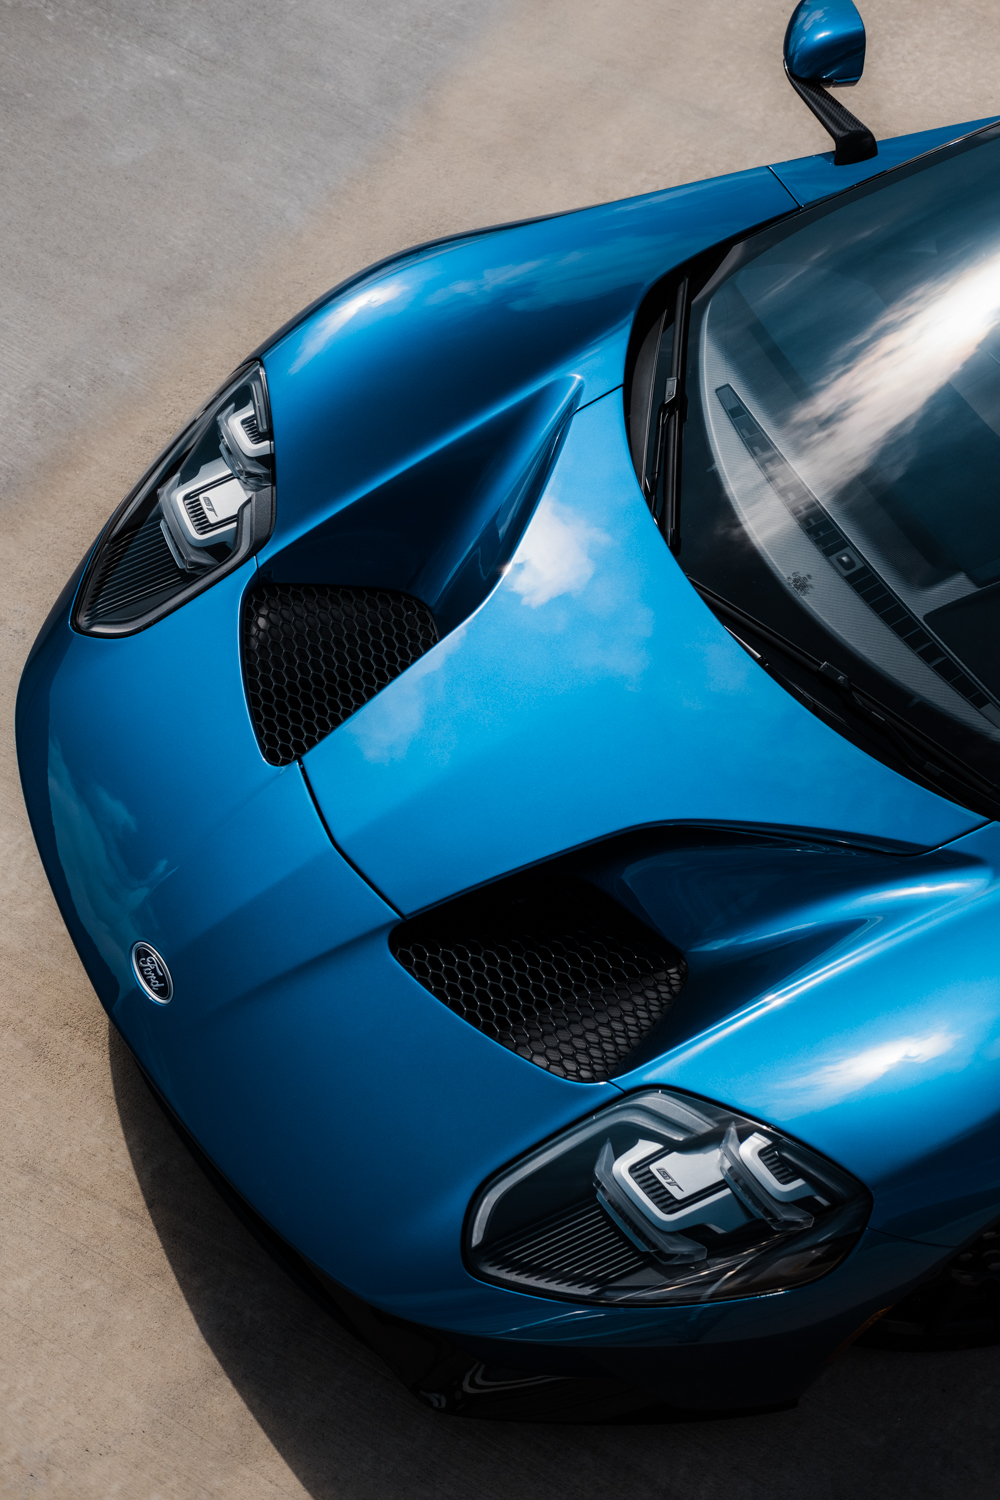 Ford GT-XPEL Ultimate Paint Protection Film-Full-body Wrap-Paint Protection Film-Clear Bra-Ford Performance-183.jpg